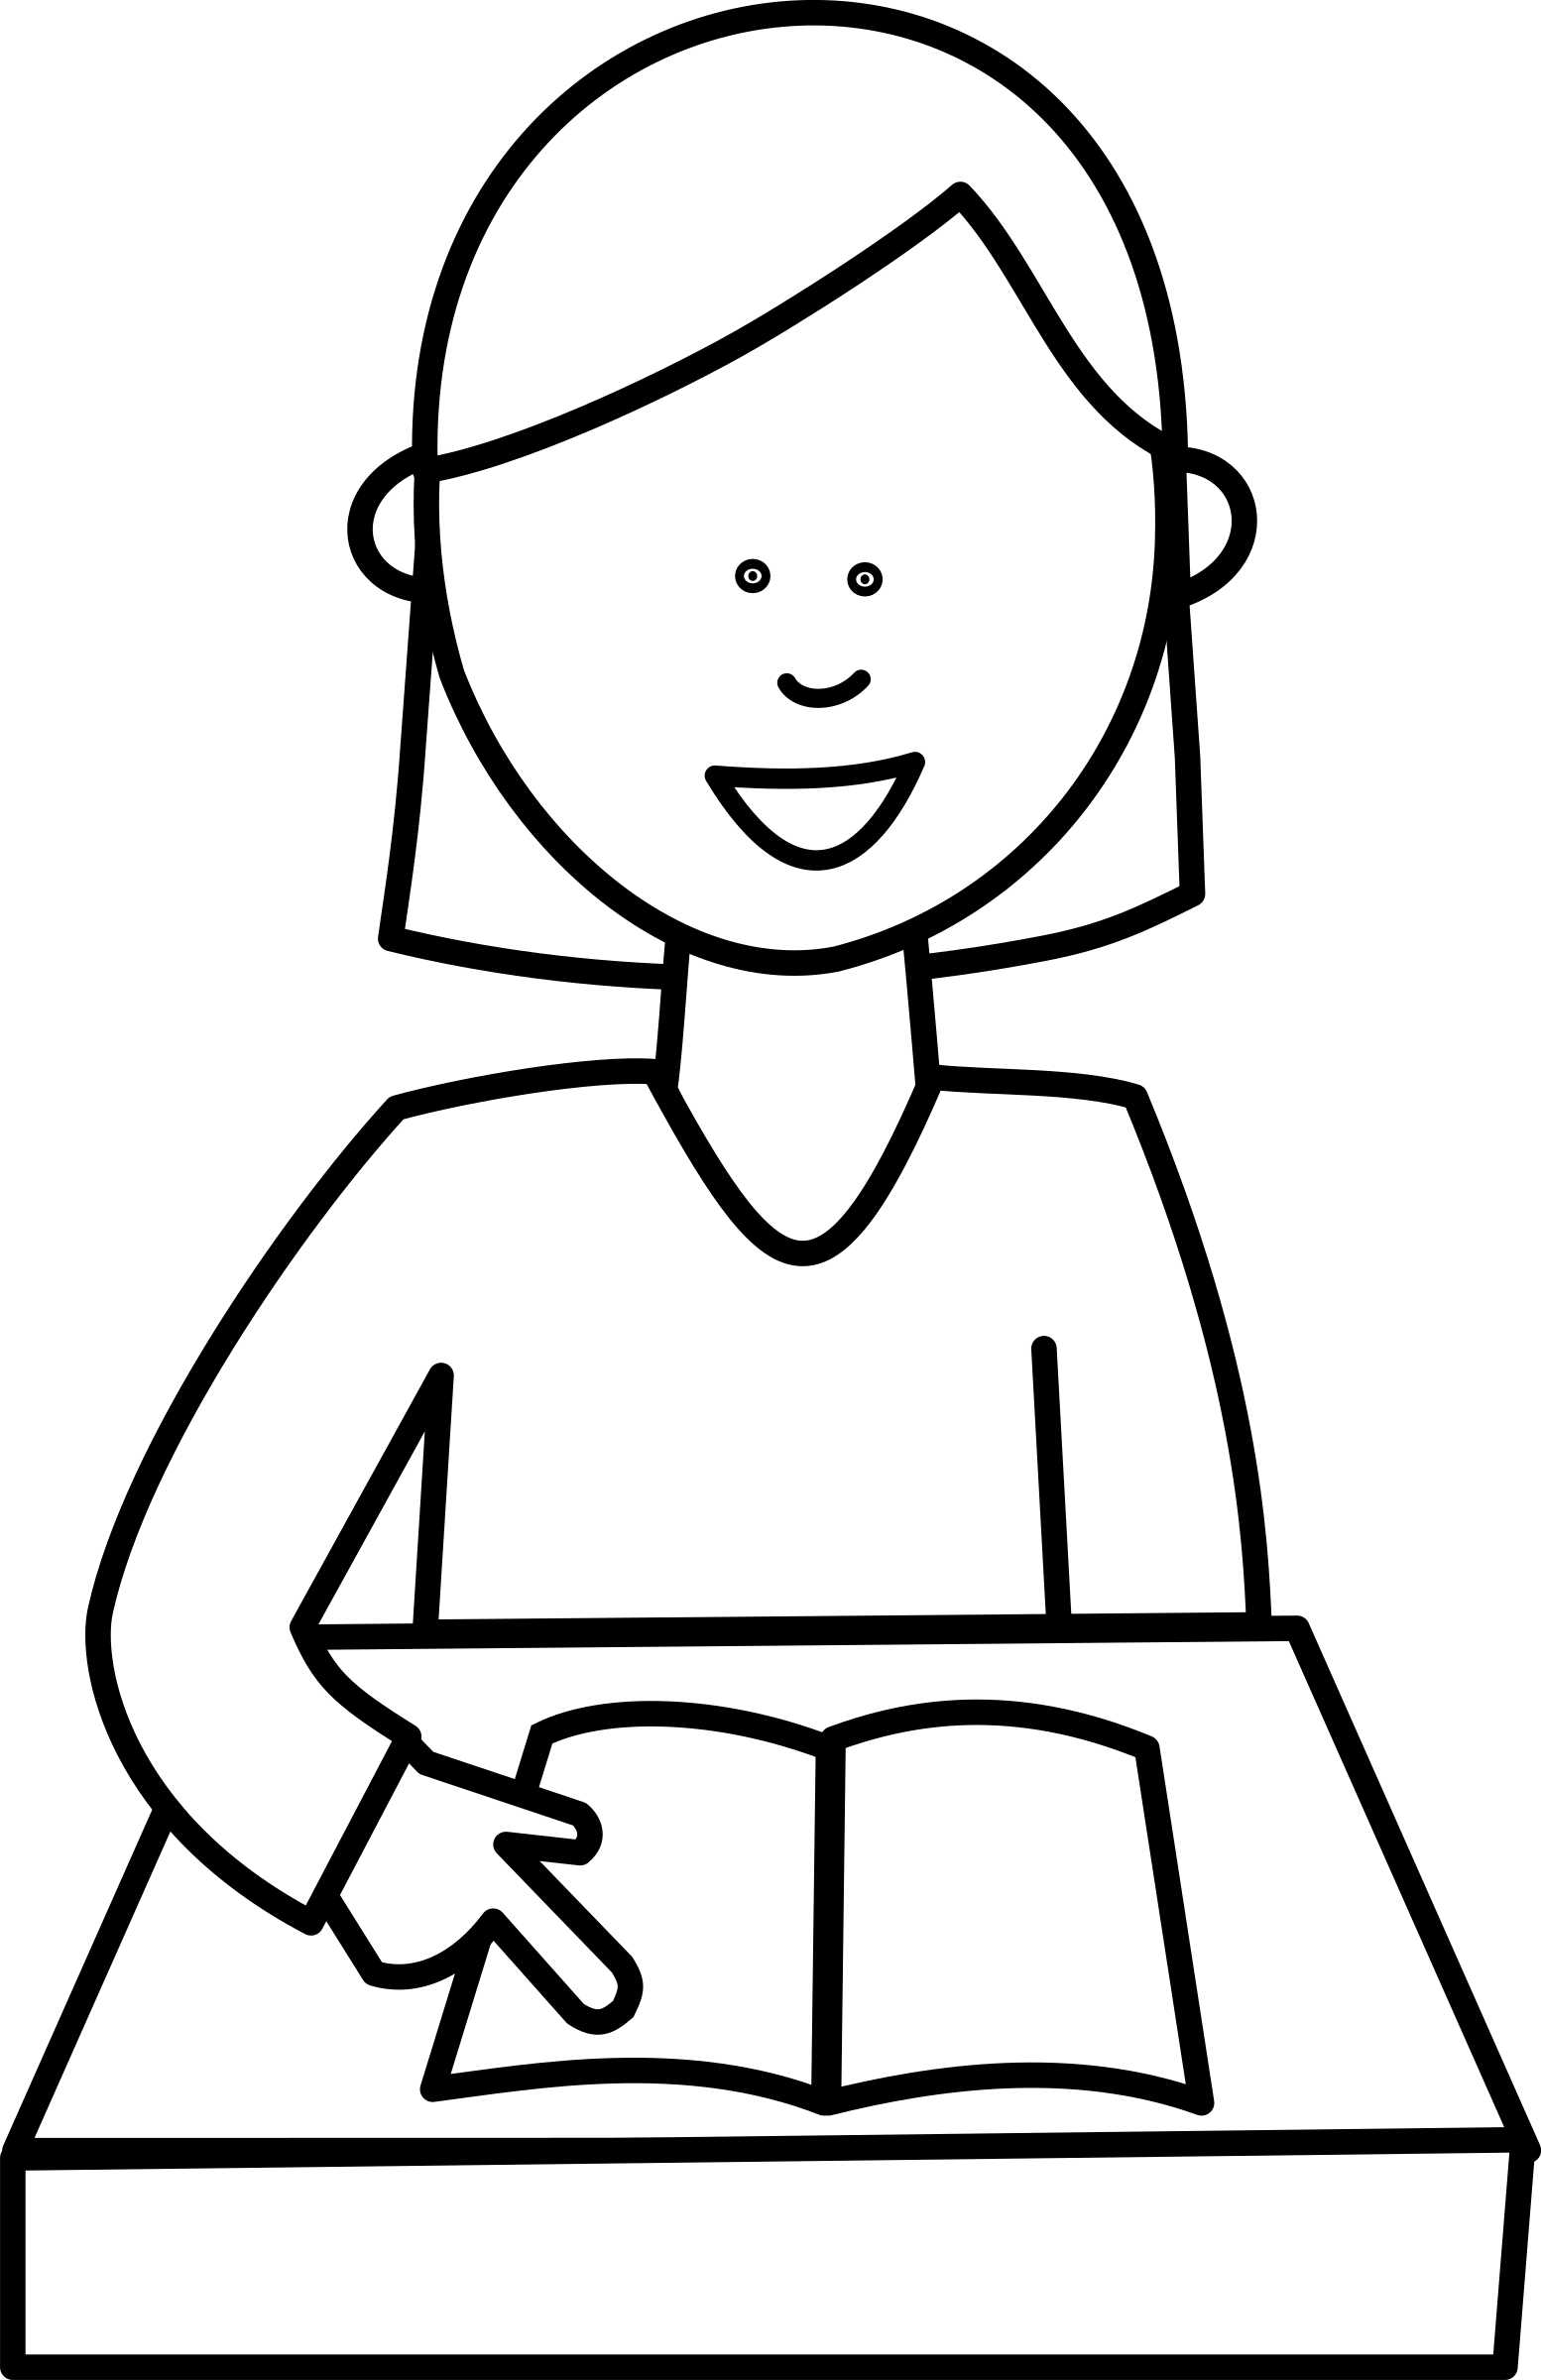 White student clipart freeuse library Download Read A Book Clipart Black And White - Student ... freeuse library